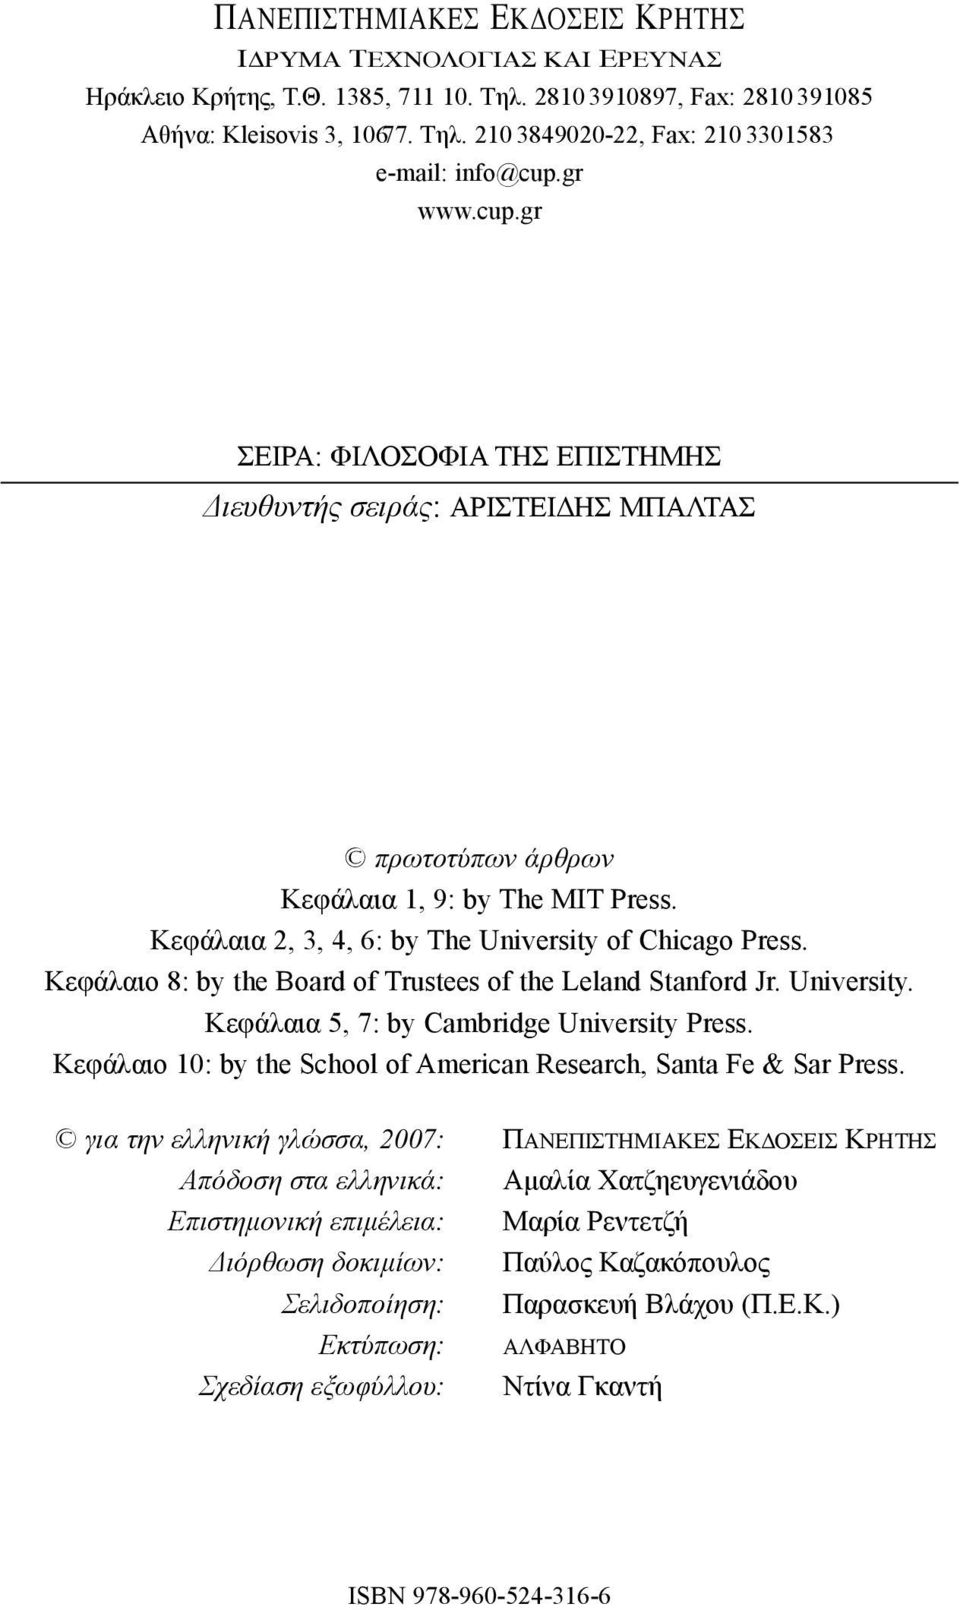 Κεφάλαιο 8: by the Board of Trustees of the Leland Stanford Jr. University. Κεφάλαια 5, 7: by Cambridge University Press. Κεφάλαιο 10: by the School of American Research, Santa Fe & Sar Press.